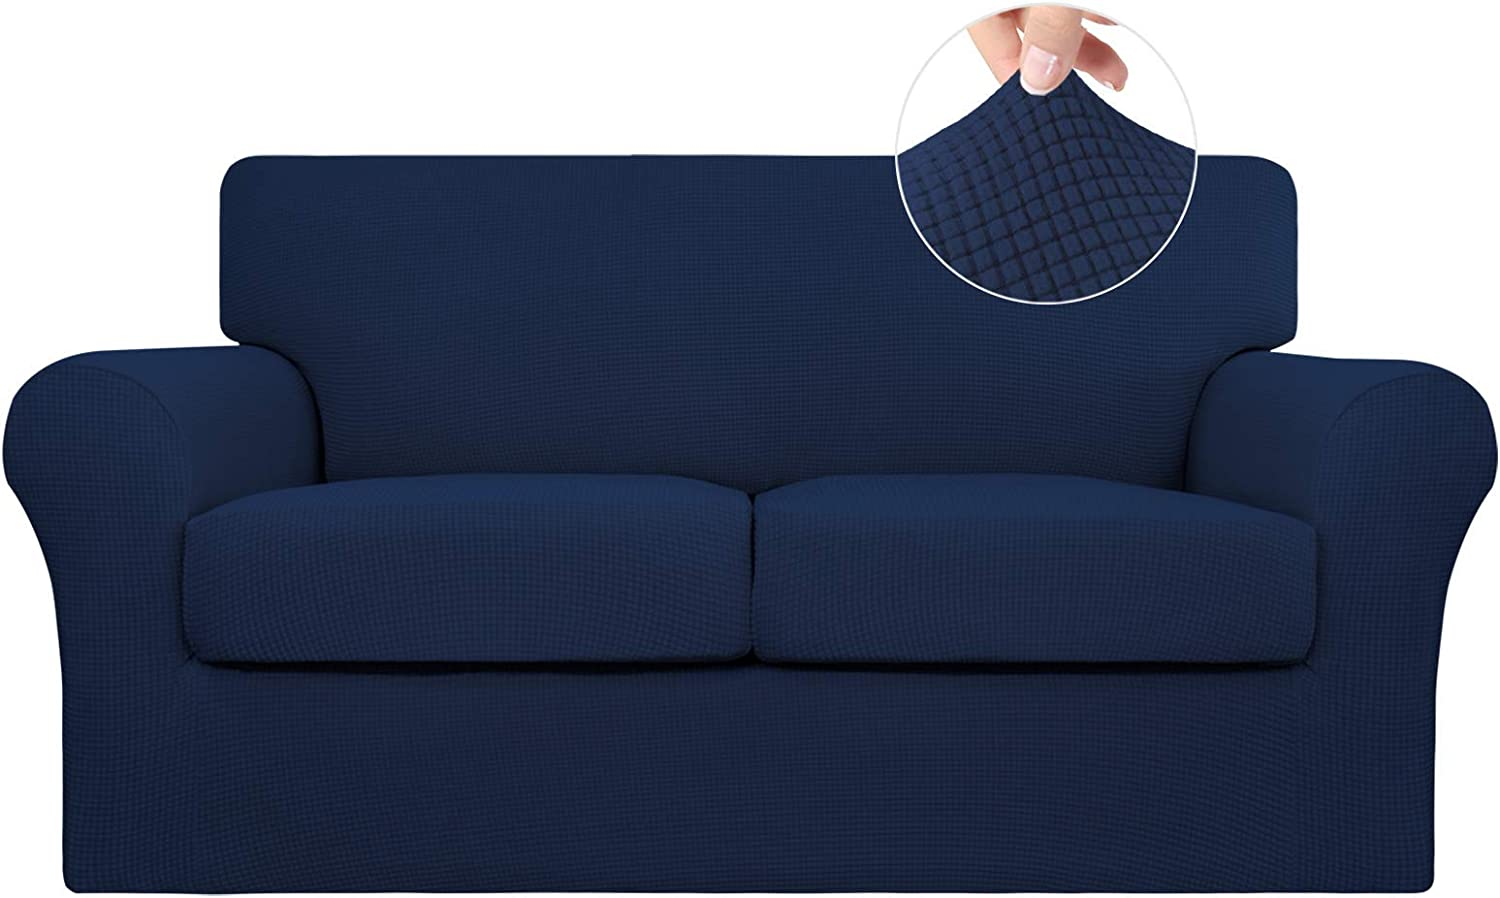 Easy-Going 3 Pieces Stretch Couch Cover Sofa Cover for Dogs Washable Sofa Slipcover for 2 Separate Cushion Couch Spandex Jacquard Fabric Elastic Furniture Protector for Pets,Kids(Navy, Loveseat)